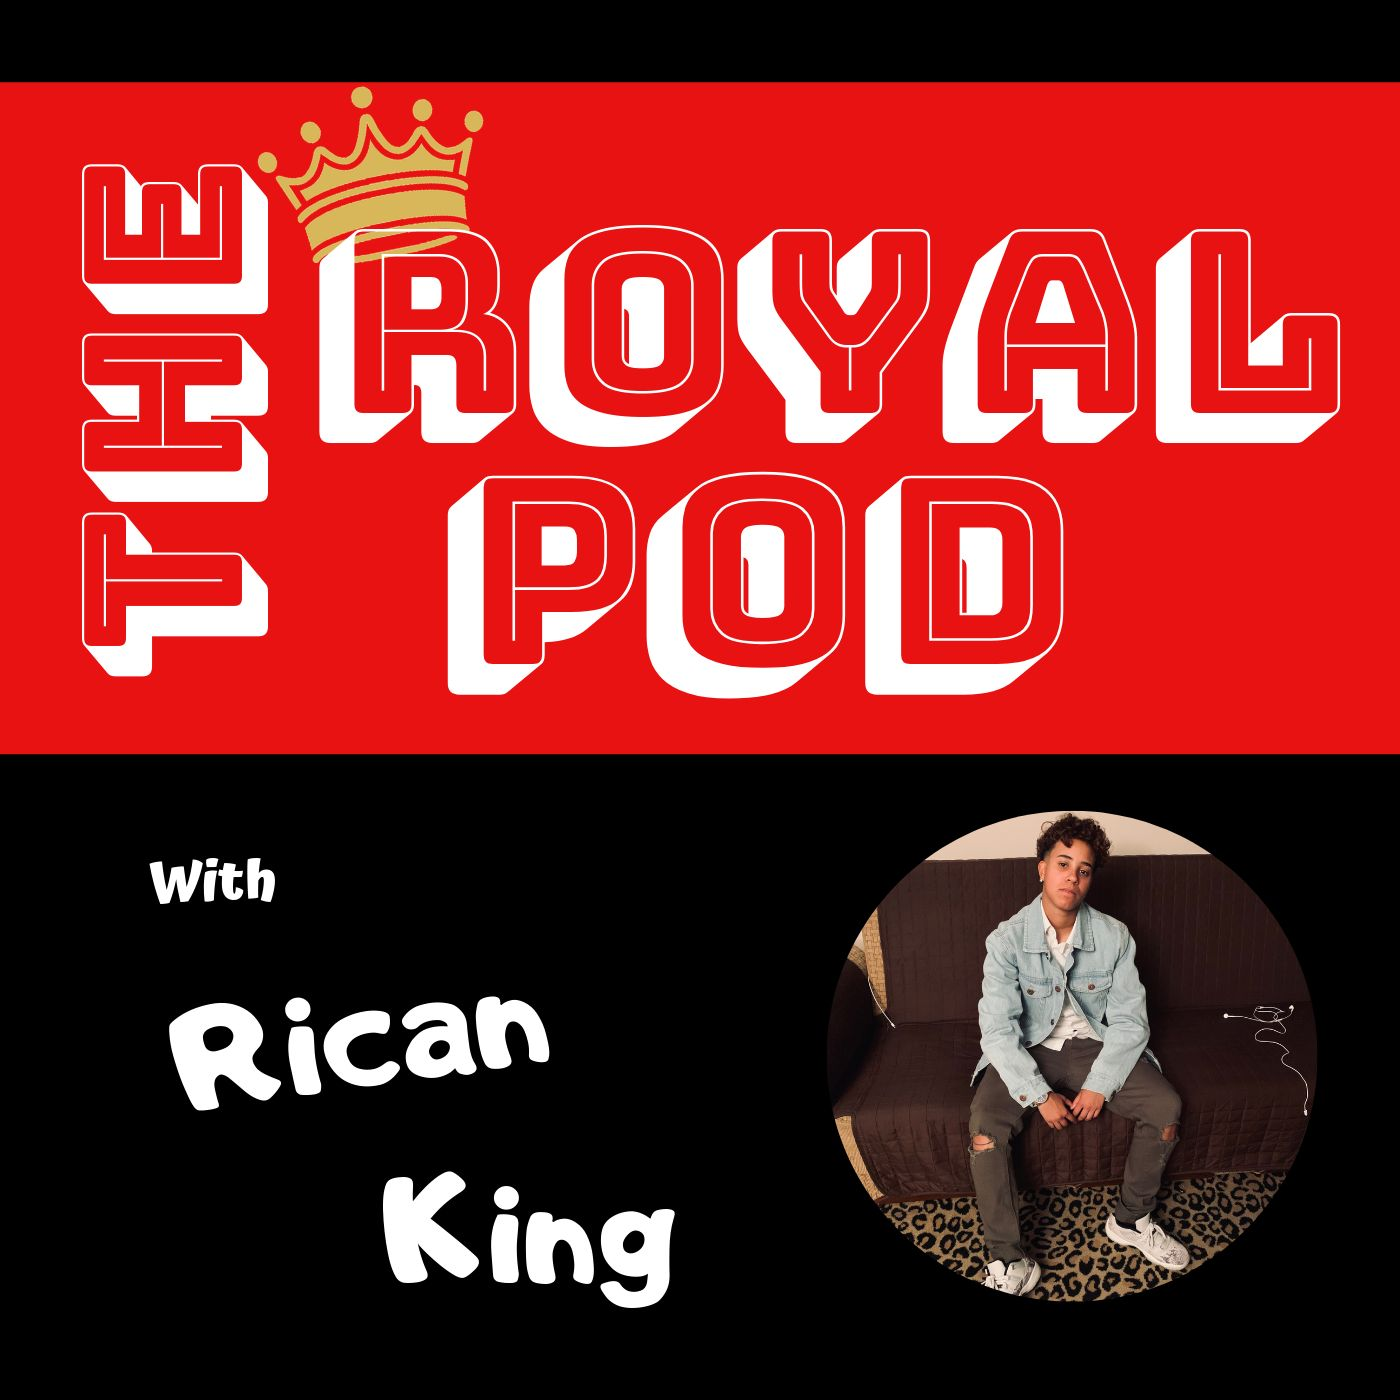 The Royal Pod